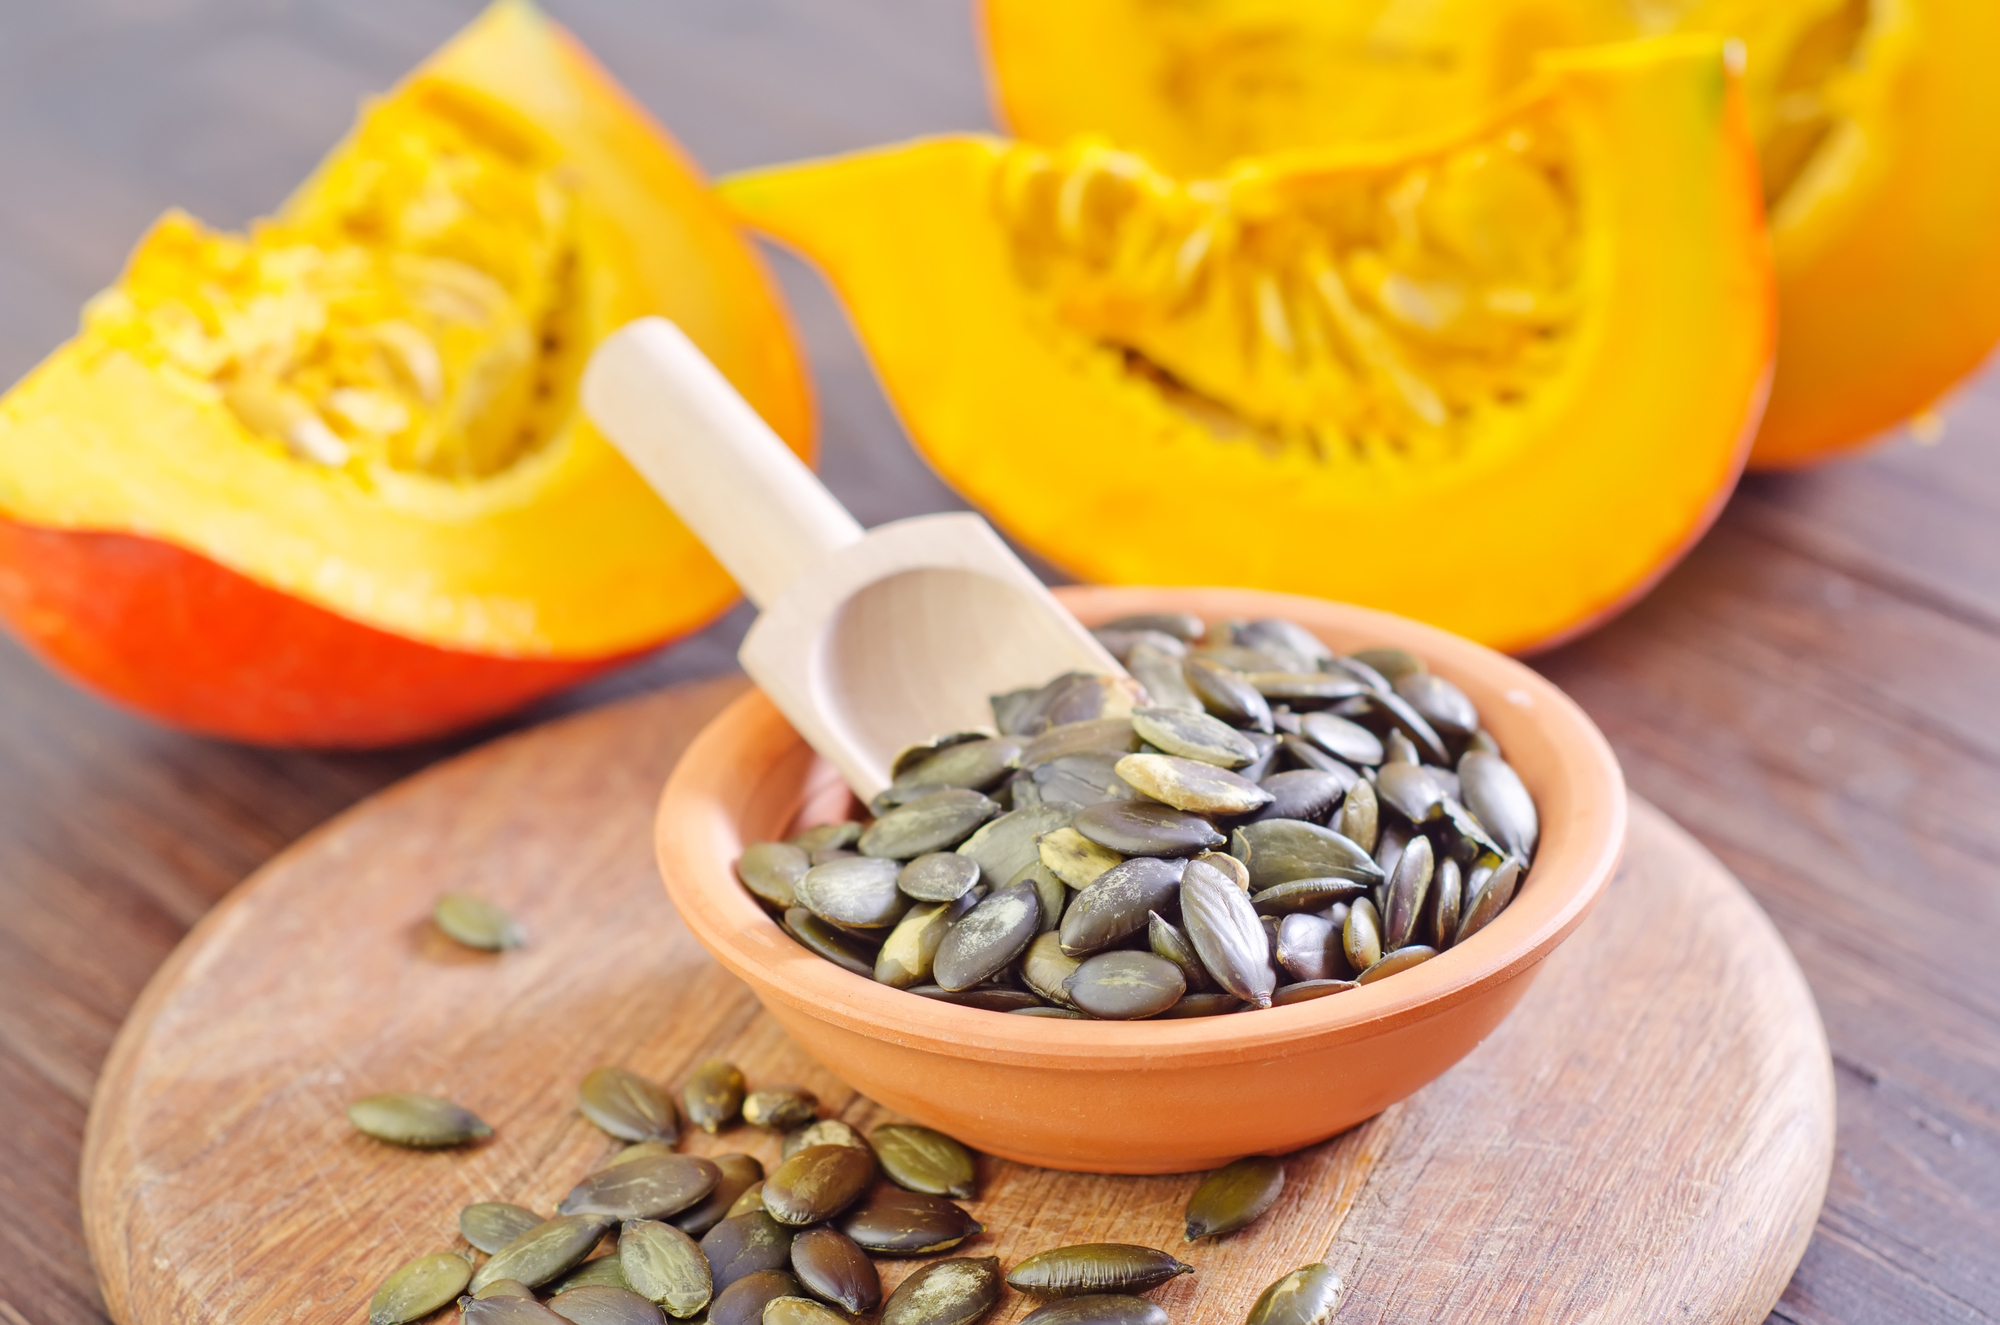 Pumpkin seeds - Can Nutrition Help With Concussion Treatment?